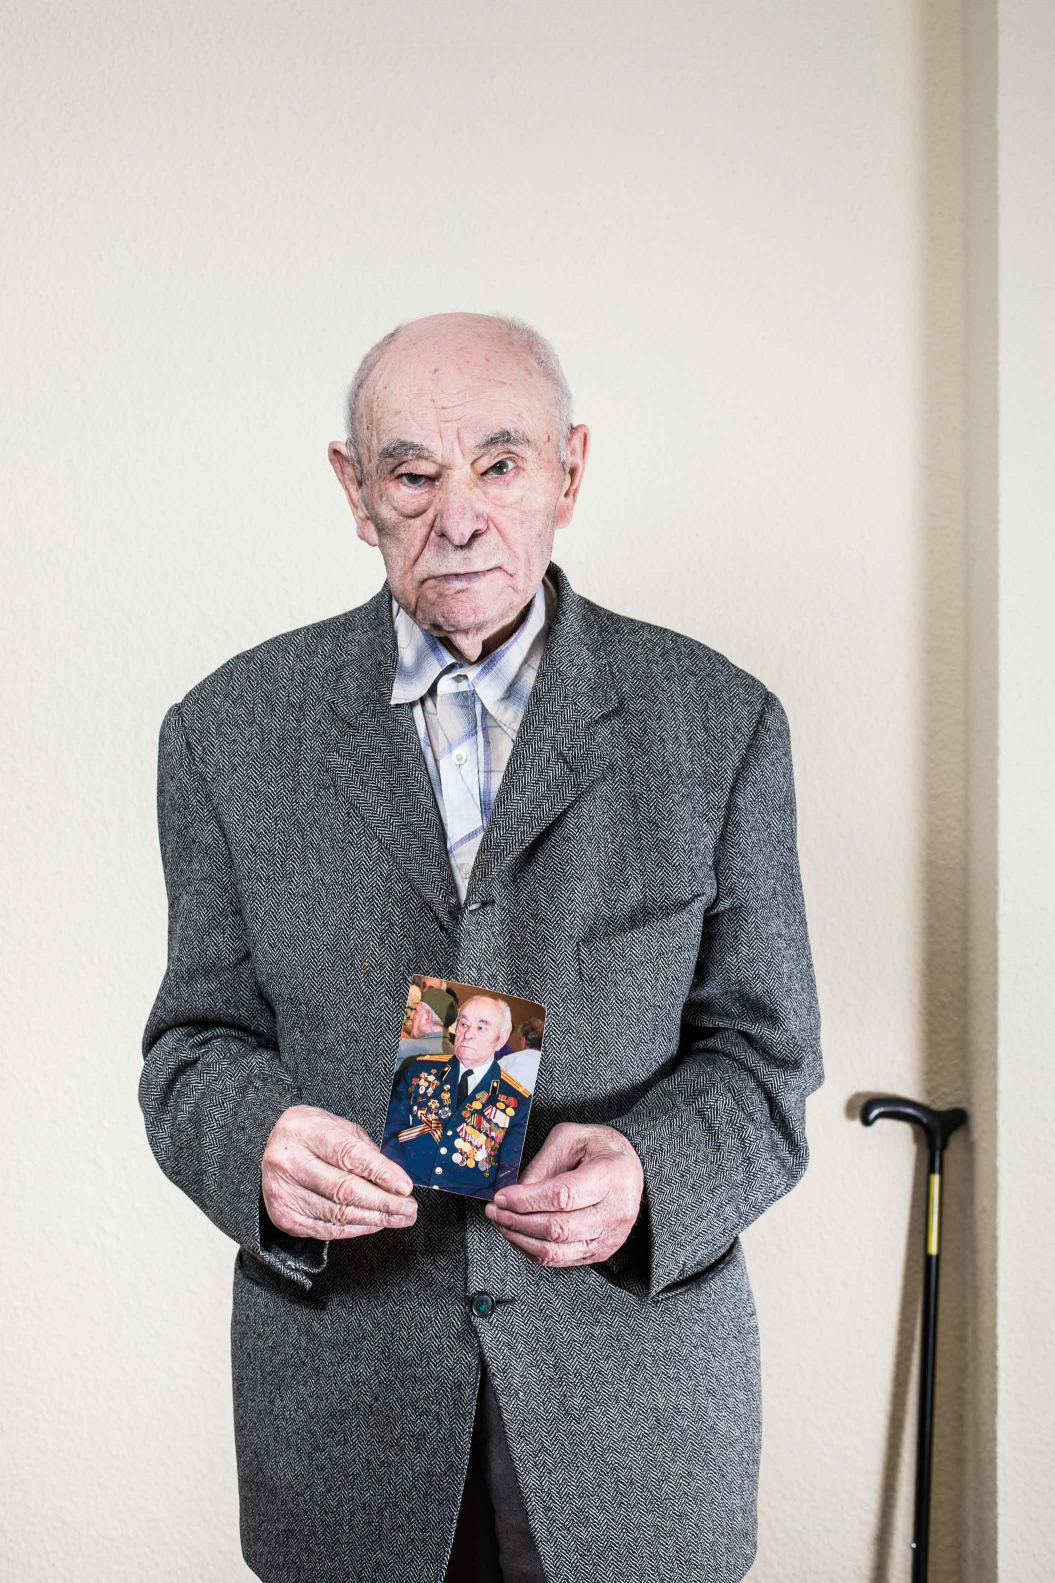 elderly man in grey suit holding a photo of himself covered in medals and decorations